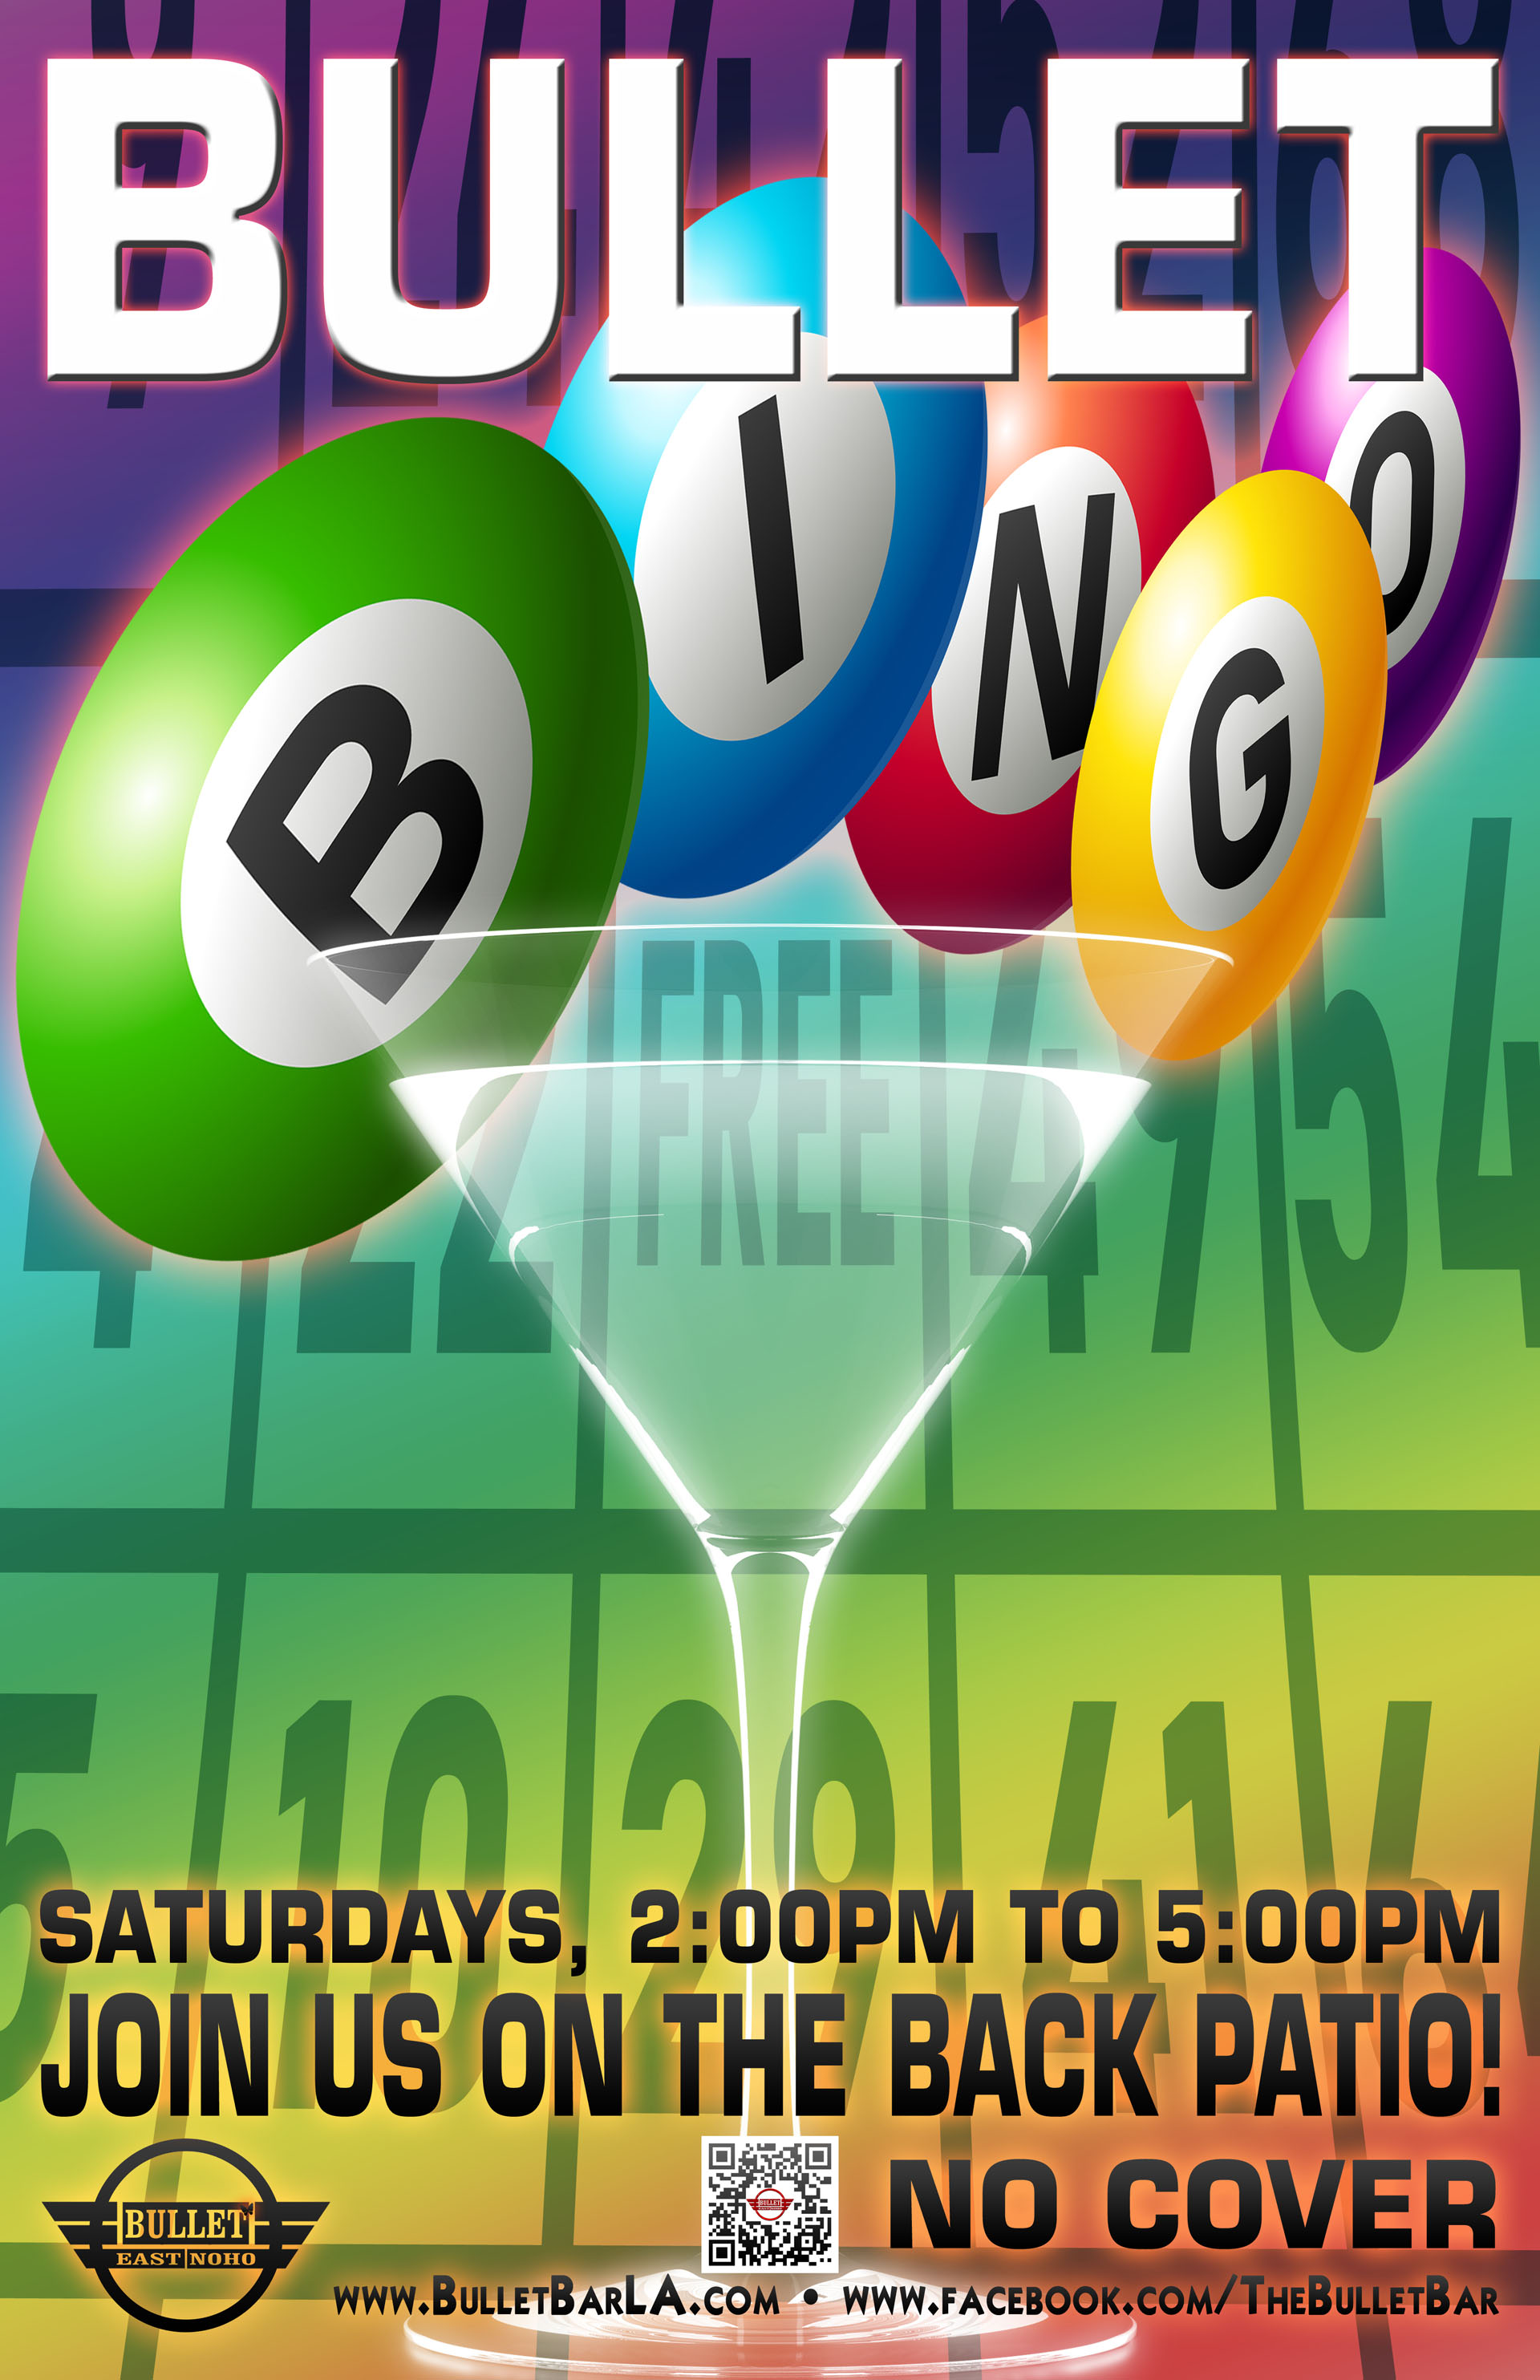 The Bullet Bar Presents BULLET BINGO: Saturdays at 2:00 PM on our back patio! No cover.